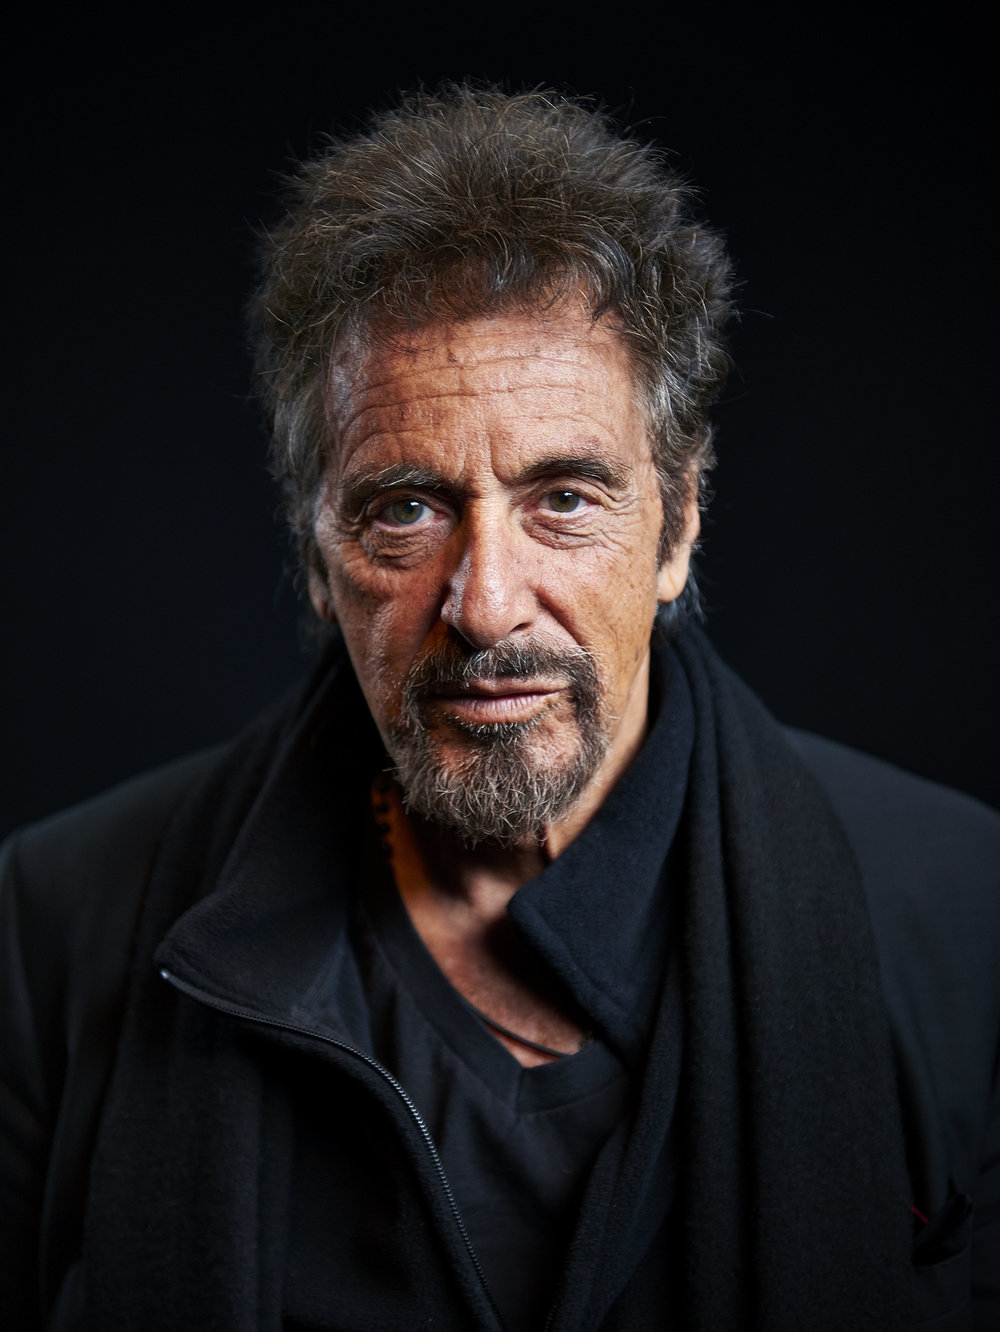 """Portrait of actor Al Pacino at the 21 Club on Thursday, Nov. 20, 2014 in New York, N.Y. Pacino stars in the upcoming movie """"The Humbling"""" which is directed by Barry Levinson."""